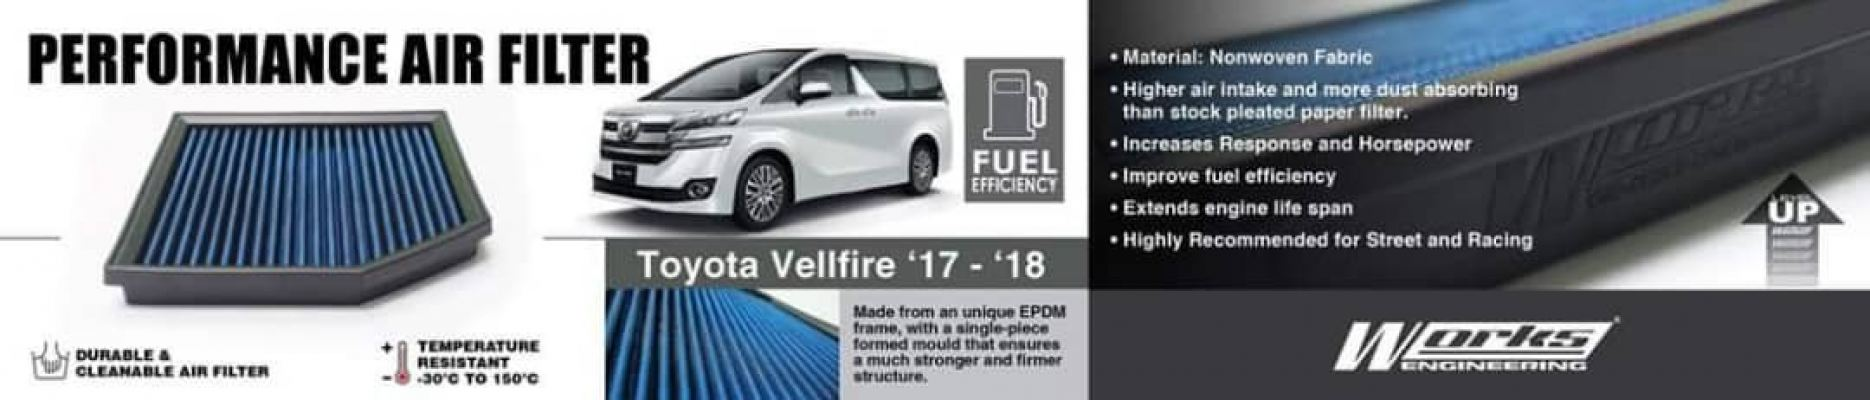 Toyota vellfire 2015-18 Works engineering air filter